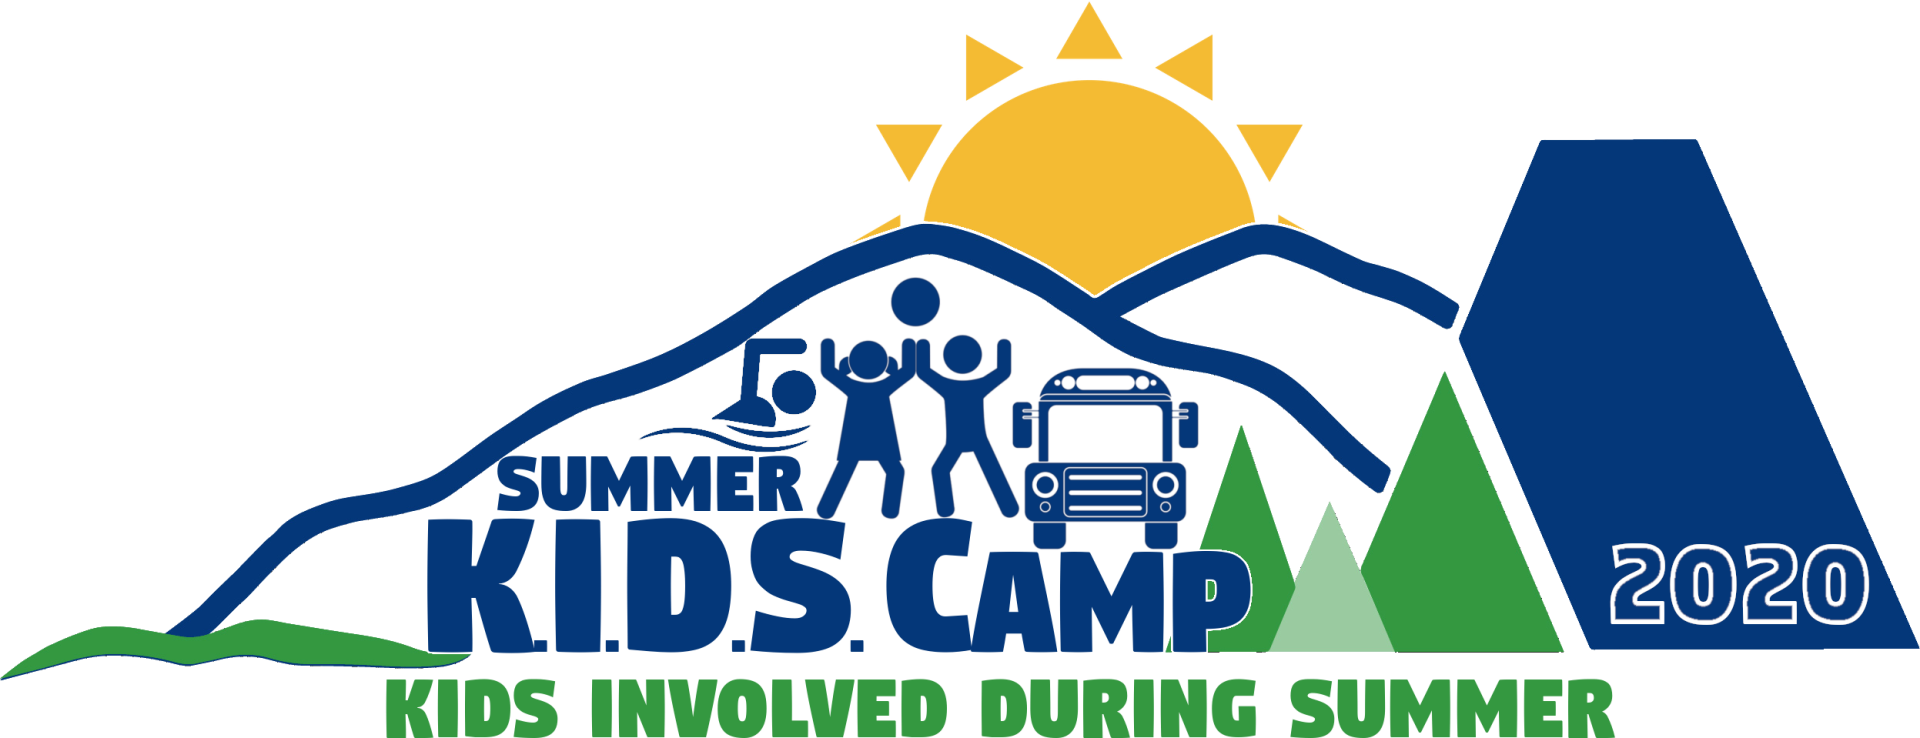 K.I.D.S. Camp Logo_FINAL_color 2020